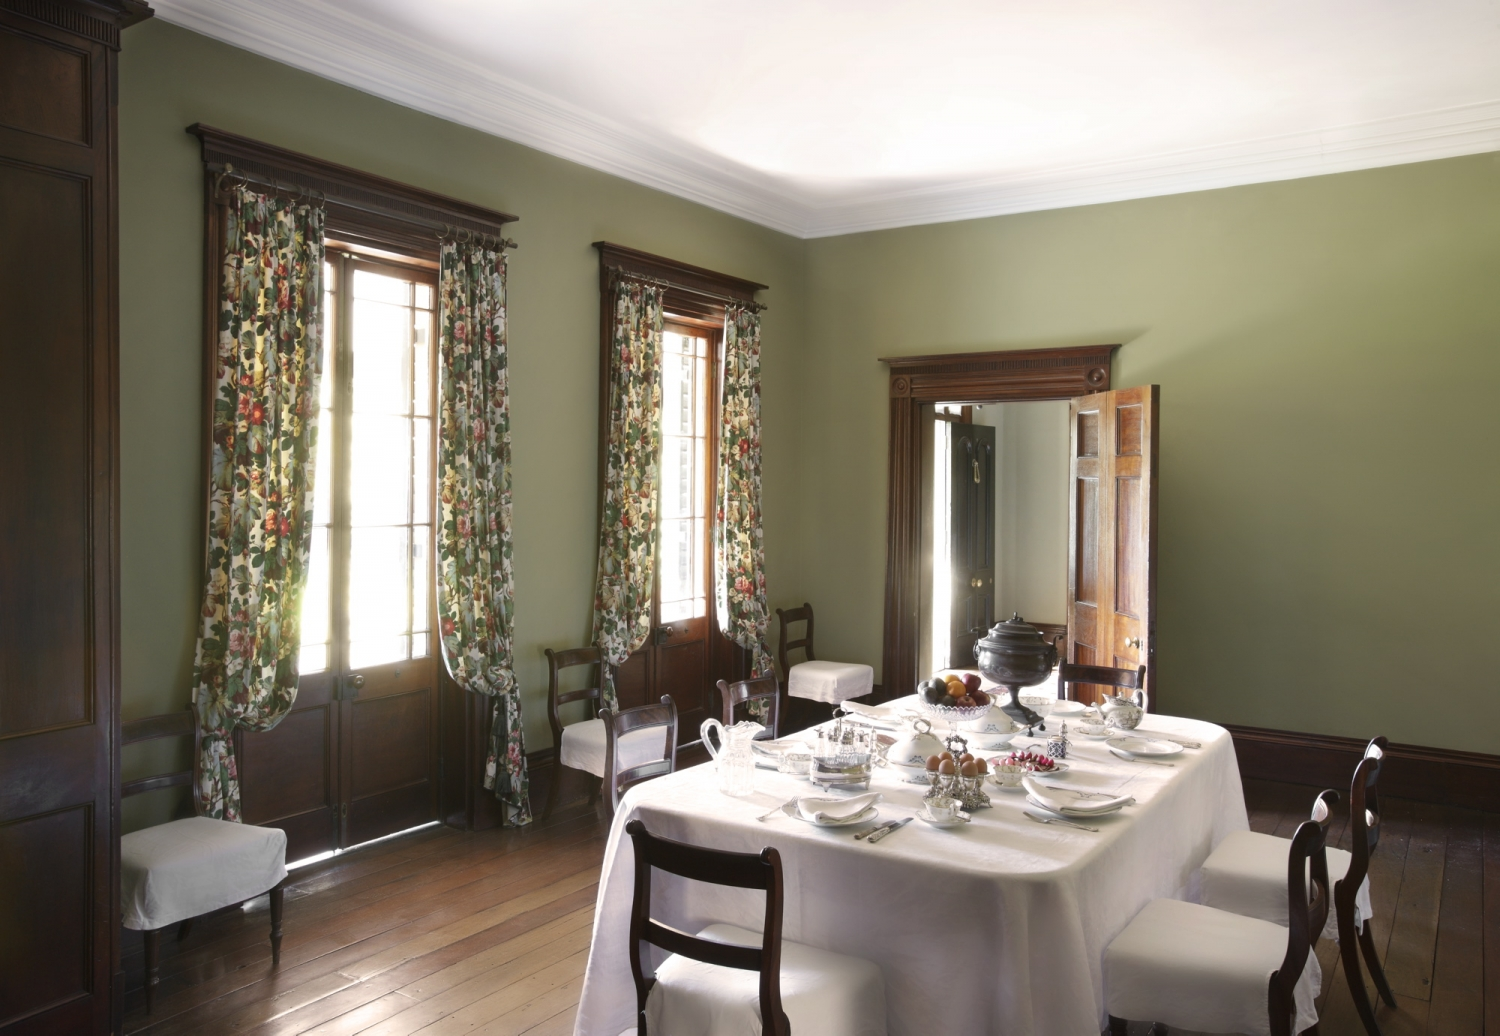 A table set for a meal with china and cutlery in a room with sunlit windows with floral curtains tied back.